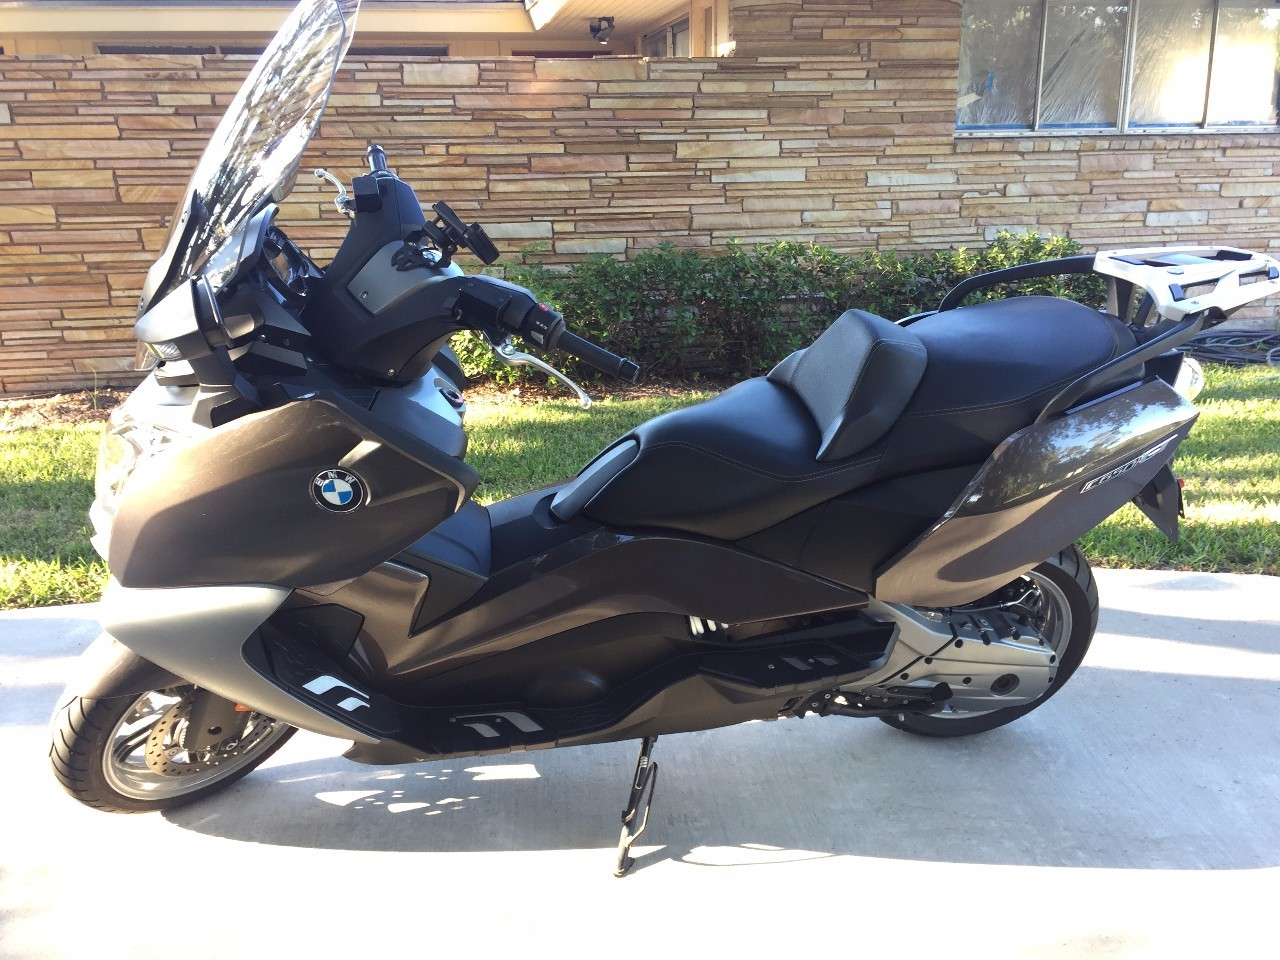 Bmw Of Corpus Christi New Or Used Motorcycle For Sale In Corpus Christi Texas